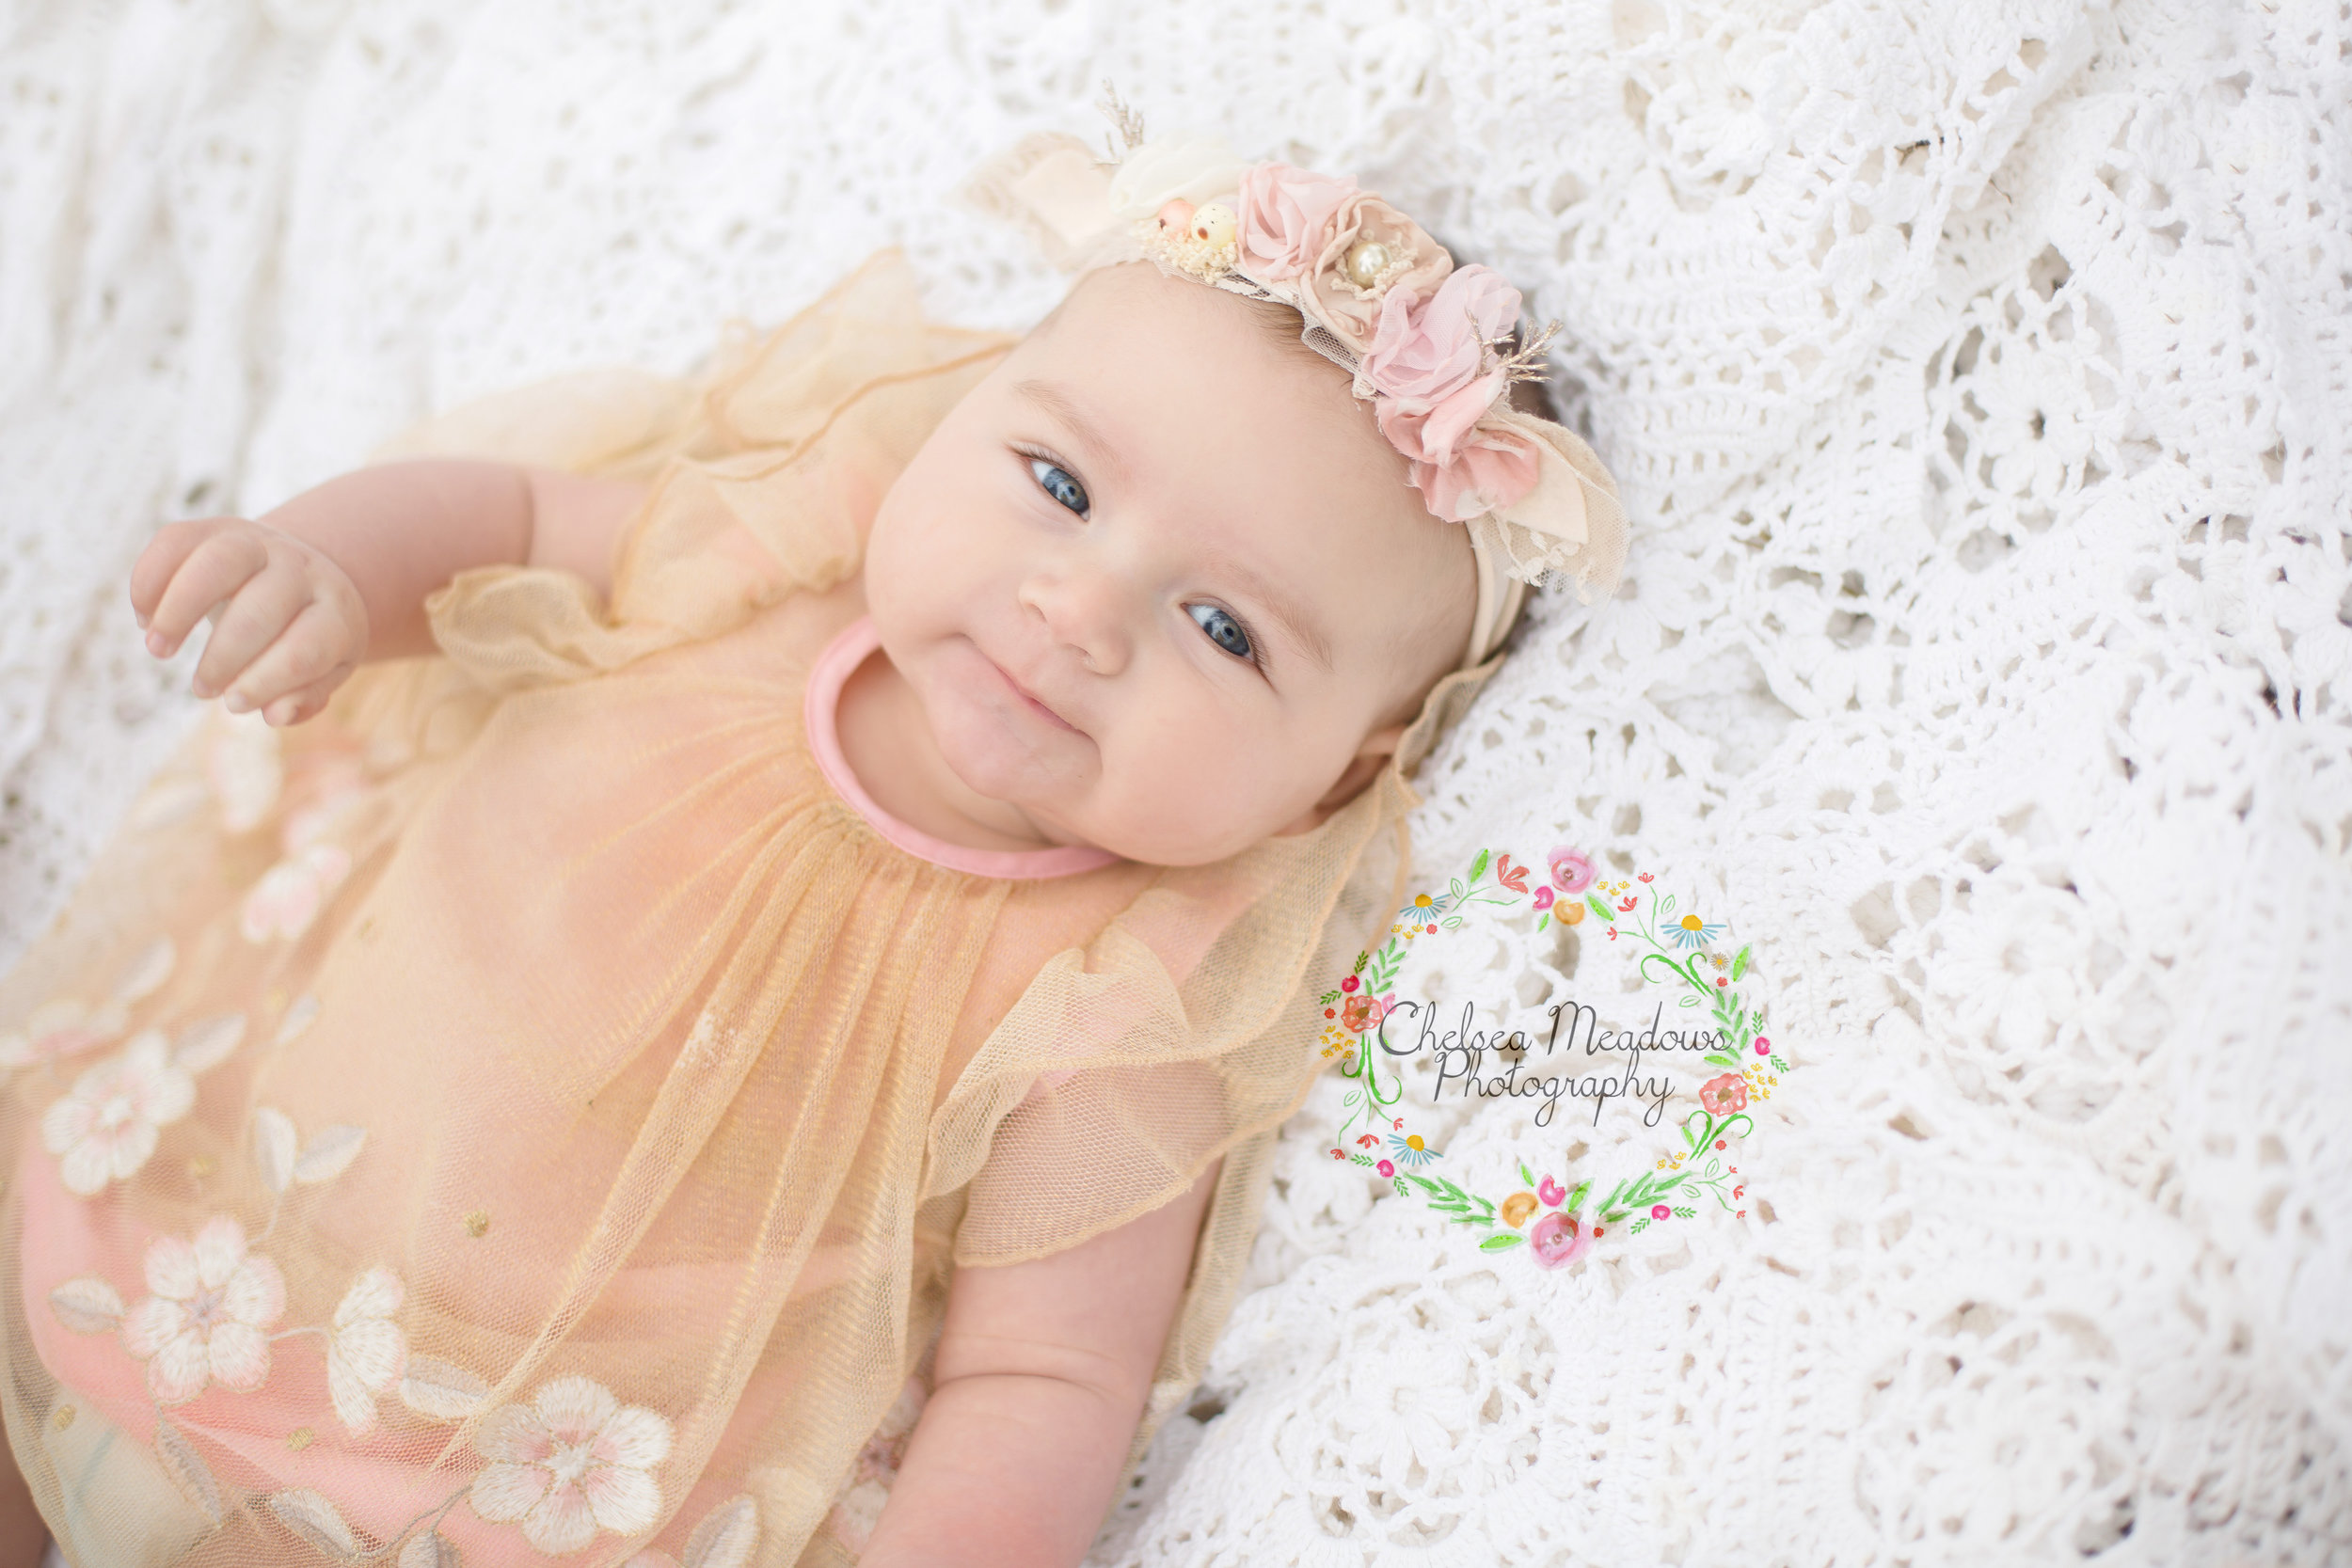 Ava's 2 Month Session - Chelsea Meadows Photography (33)_edited-1.jpg